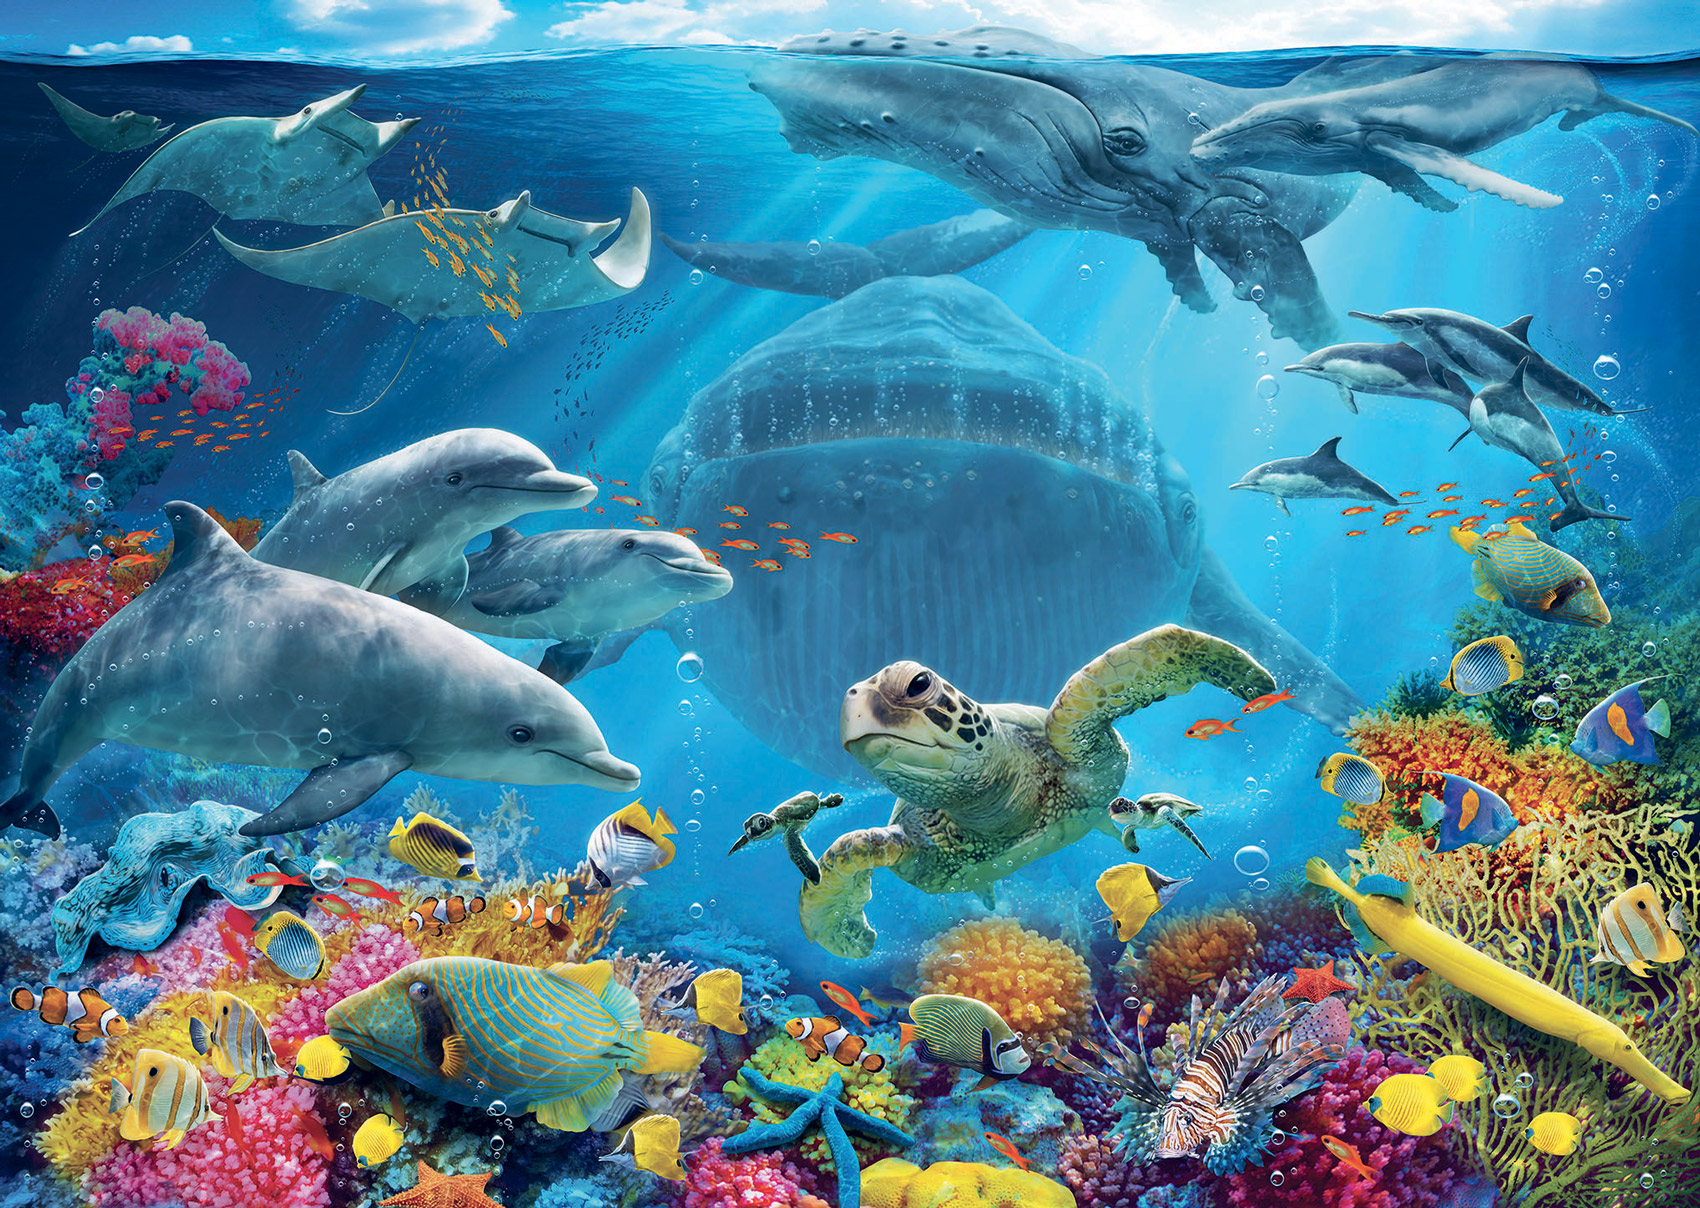 Life Underwater Under The Sea Jigsaw Puzzle